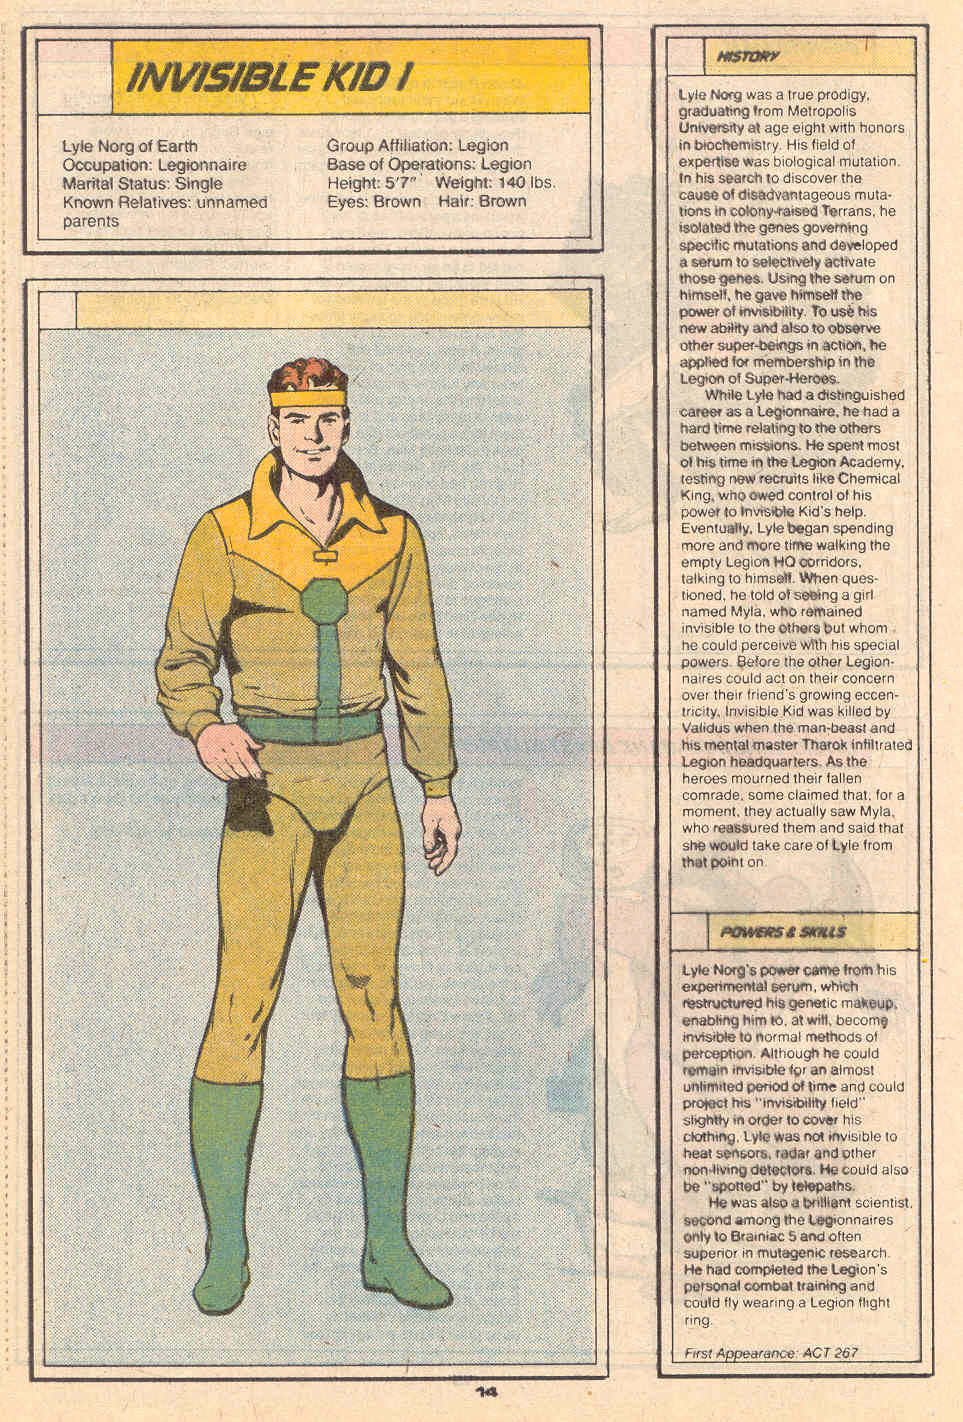 Invisible Kid I by Curt Swan and Ty Templeton - Who's Who in the Legion of Super-Heroes #3